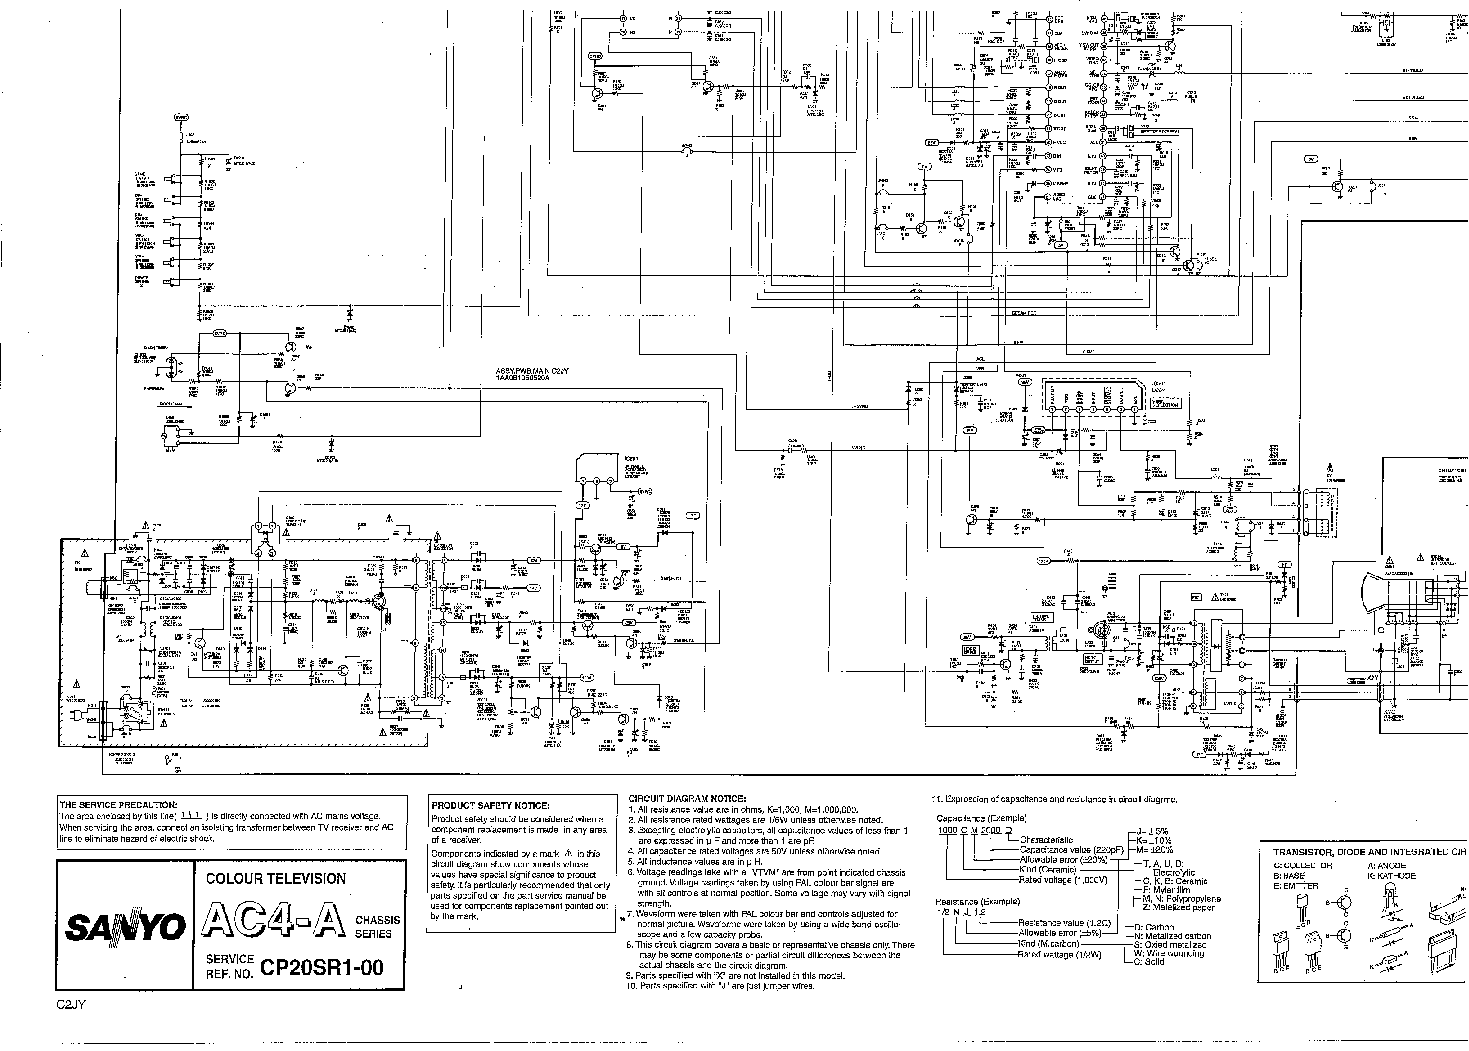 SANYO CP20SR1-00-AC4 Service Manual download, schematics